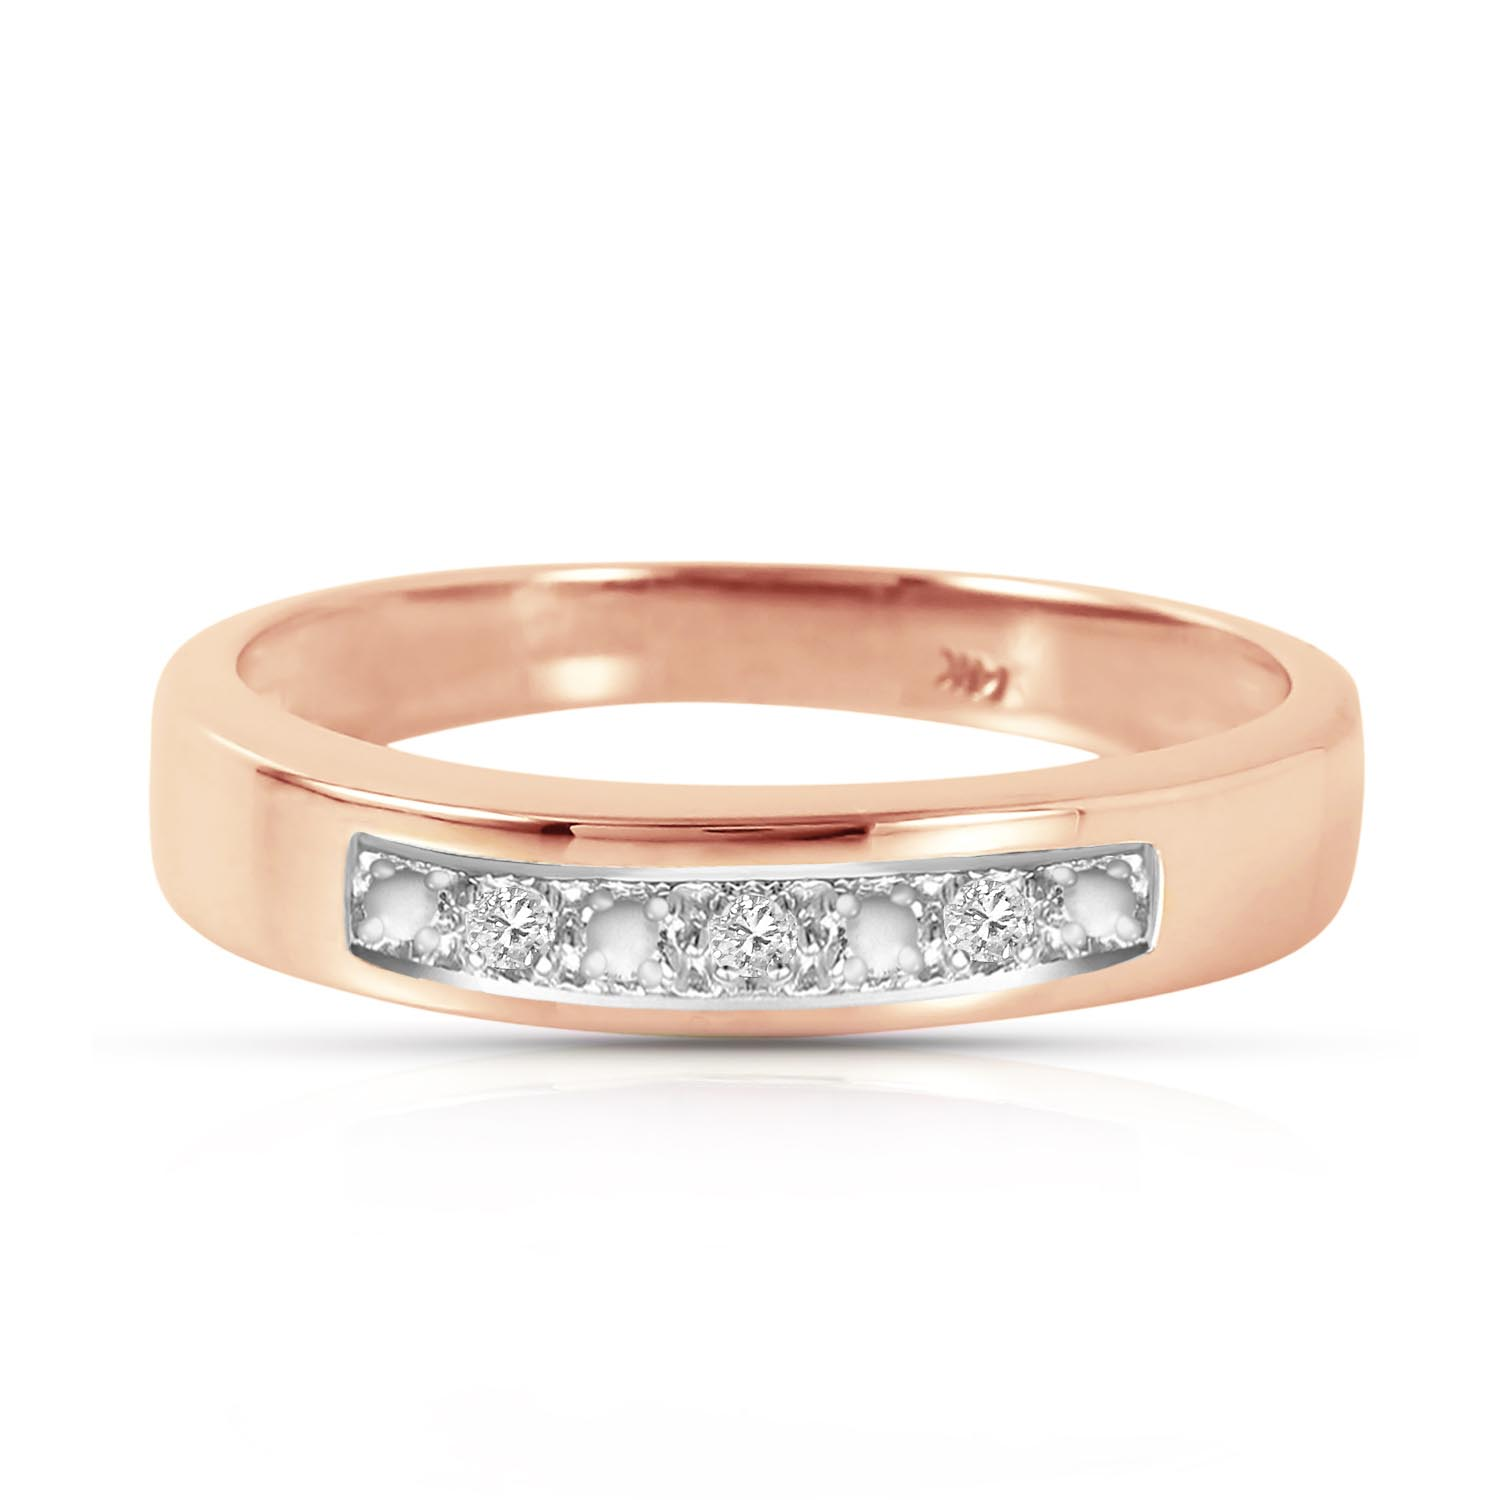 Round Cut Diamond Ring 0.02 ctw in 18ct Rose Gold